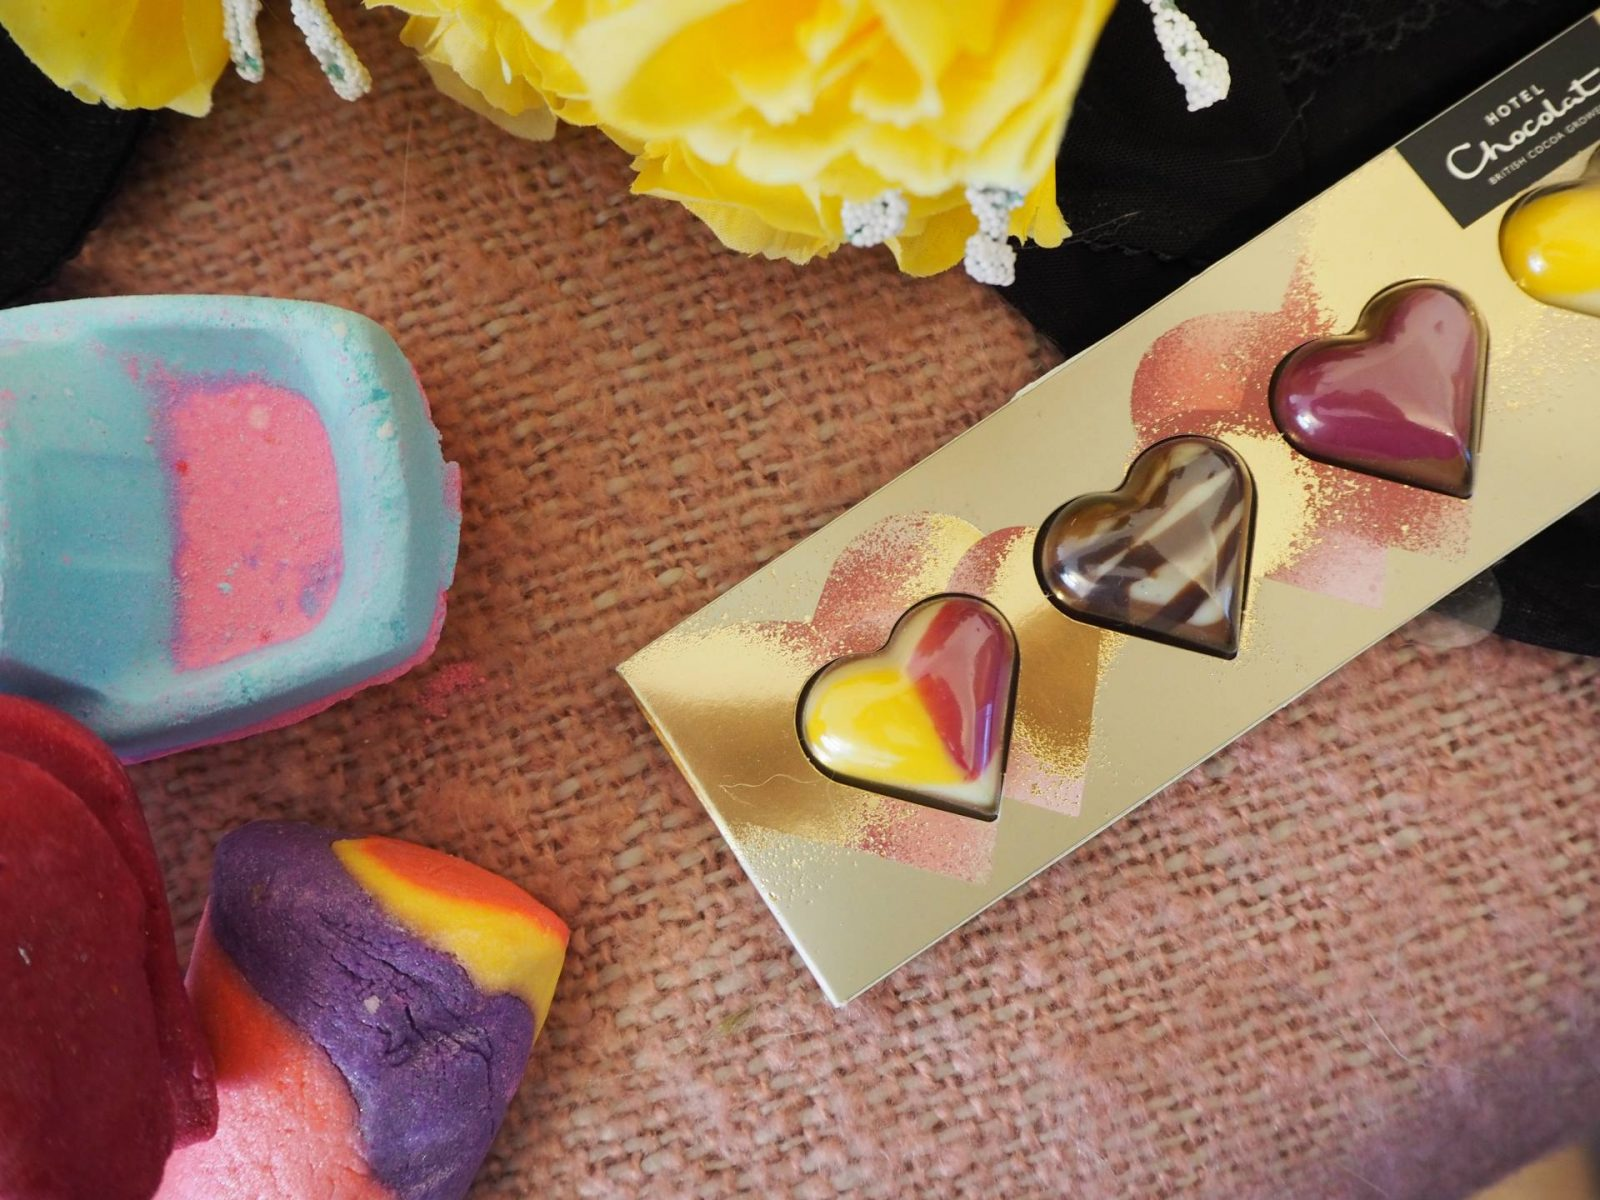 Lush and Hotel Chocolat Valentines 2018 collections